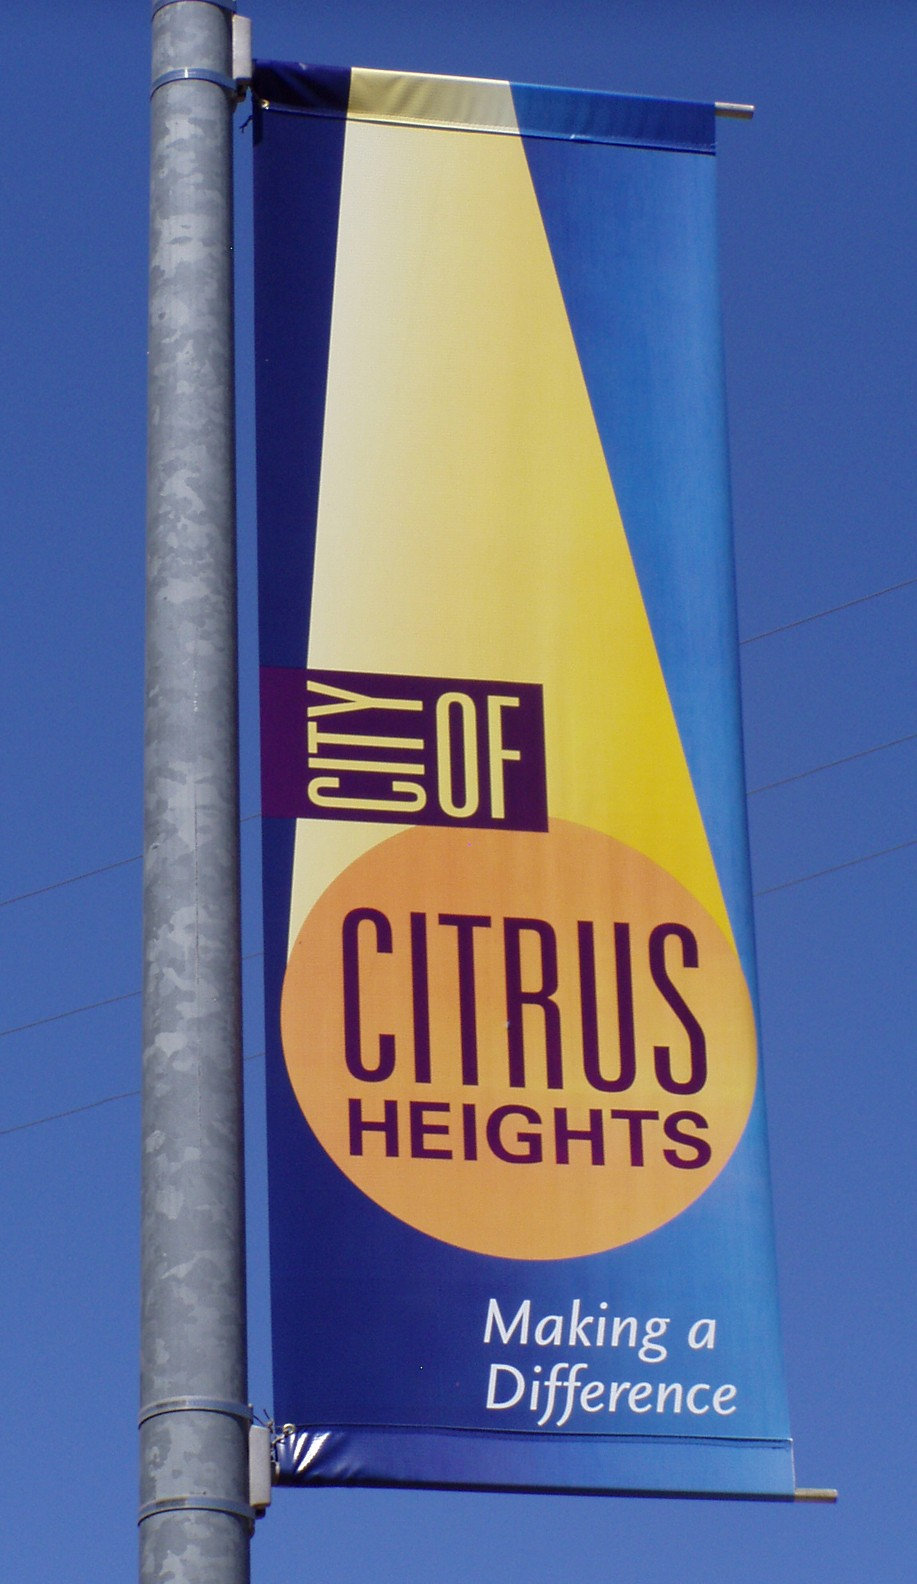 City of Citrus Heights Banner